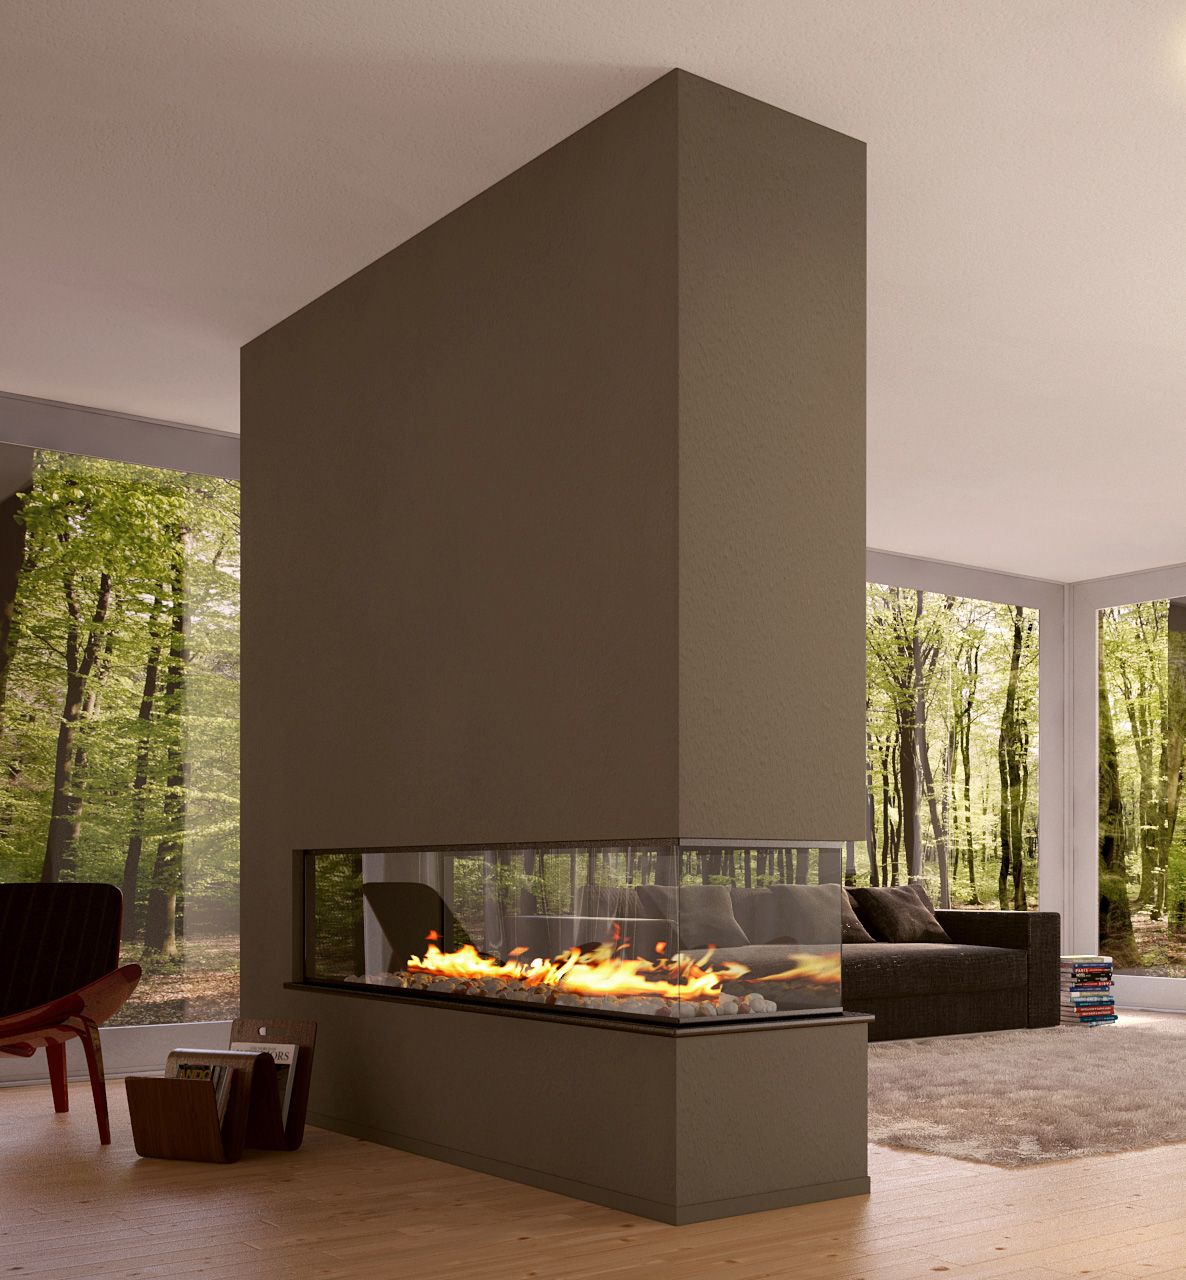 Gas Fireplaces - The Fireplace Place, Fairfield, NJ